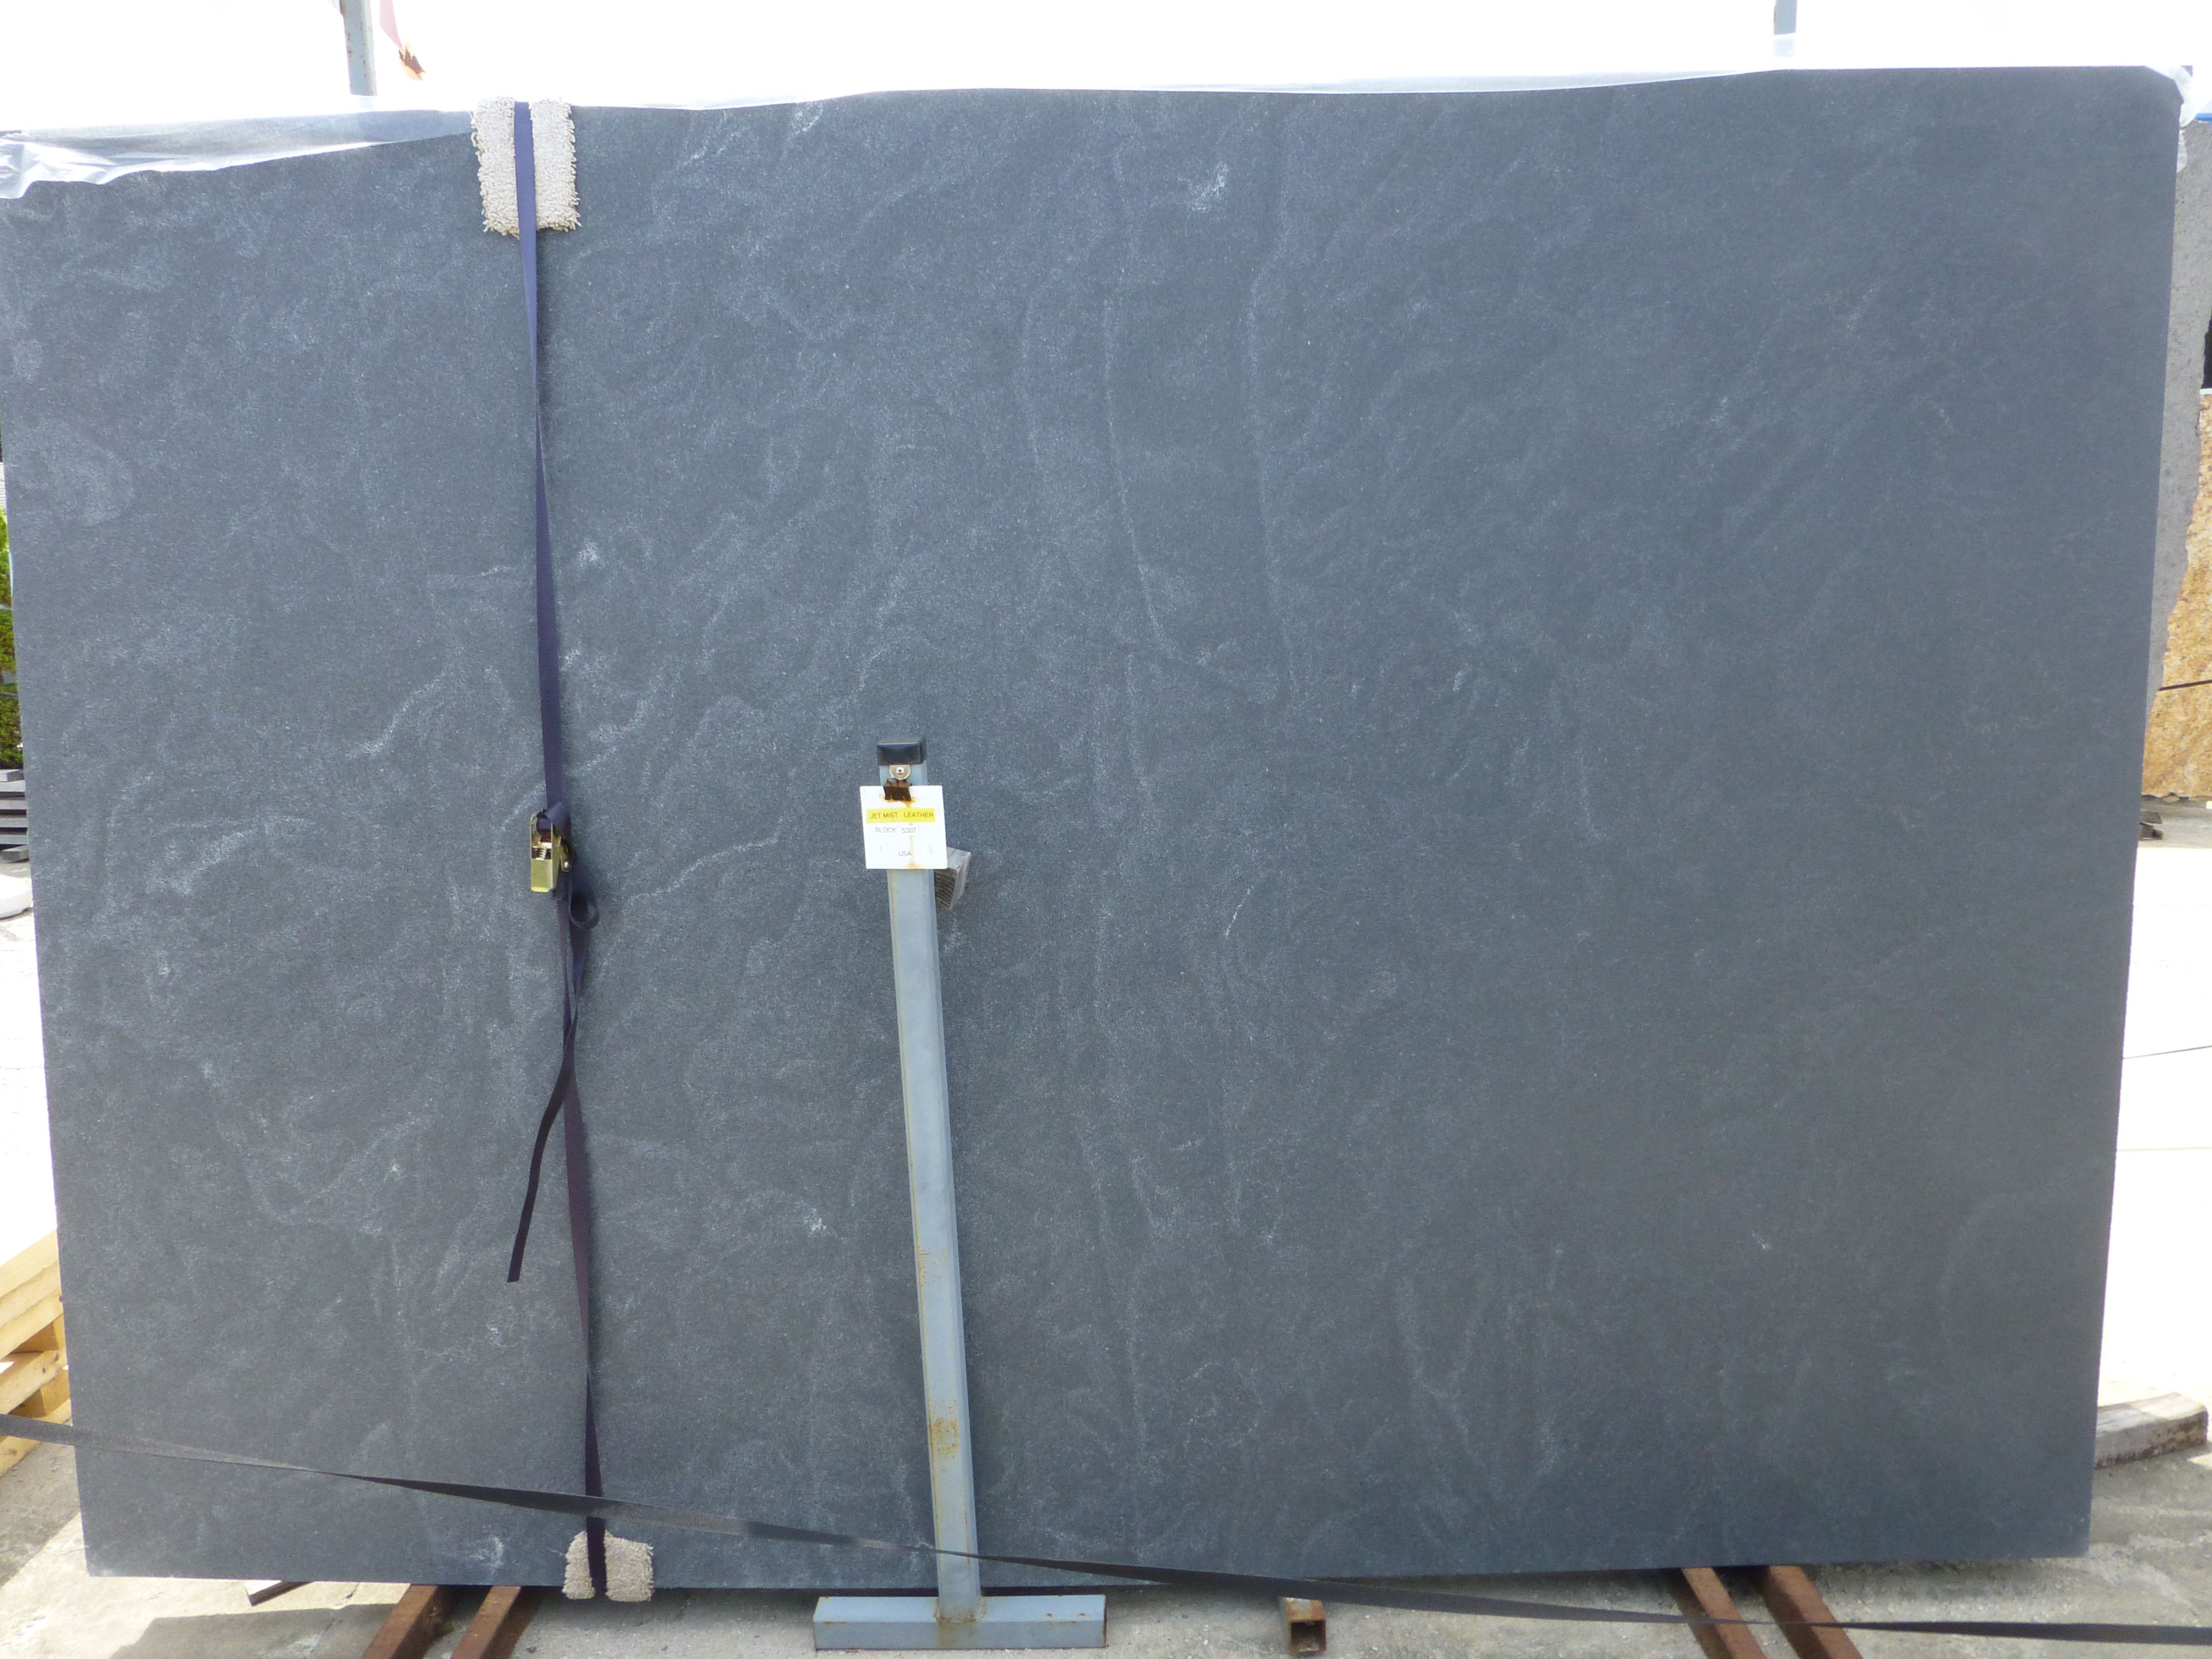 Soapstone Looking Granite : Current top pick for countertop jet mist granite in a